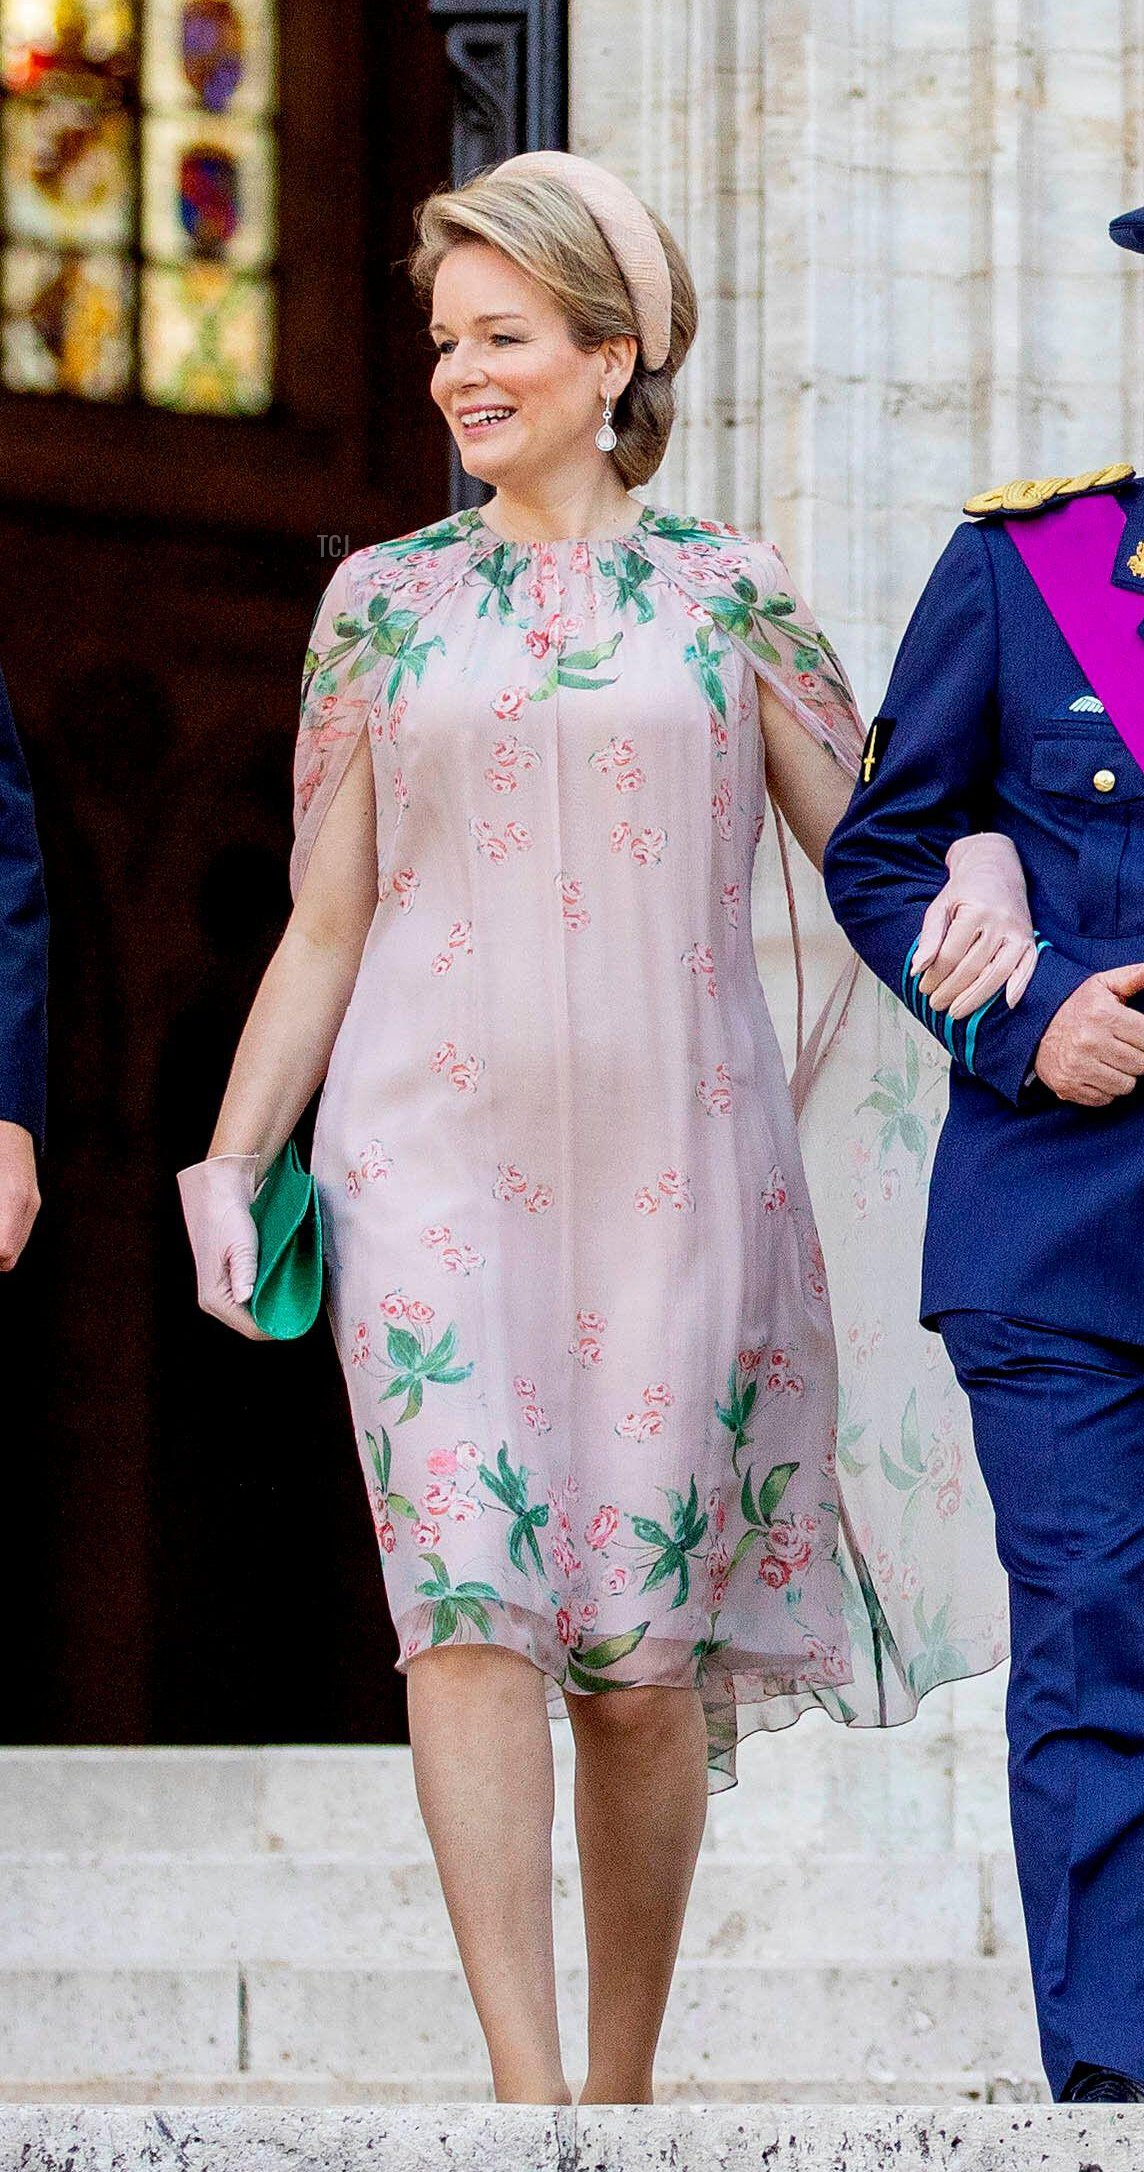 Queen Mathilde departs the cathedral in Brussels on National Day, July 21, 2021